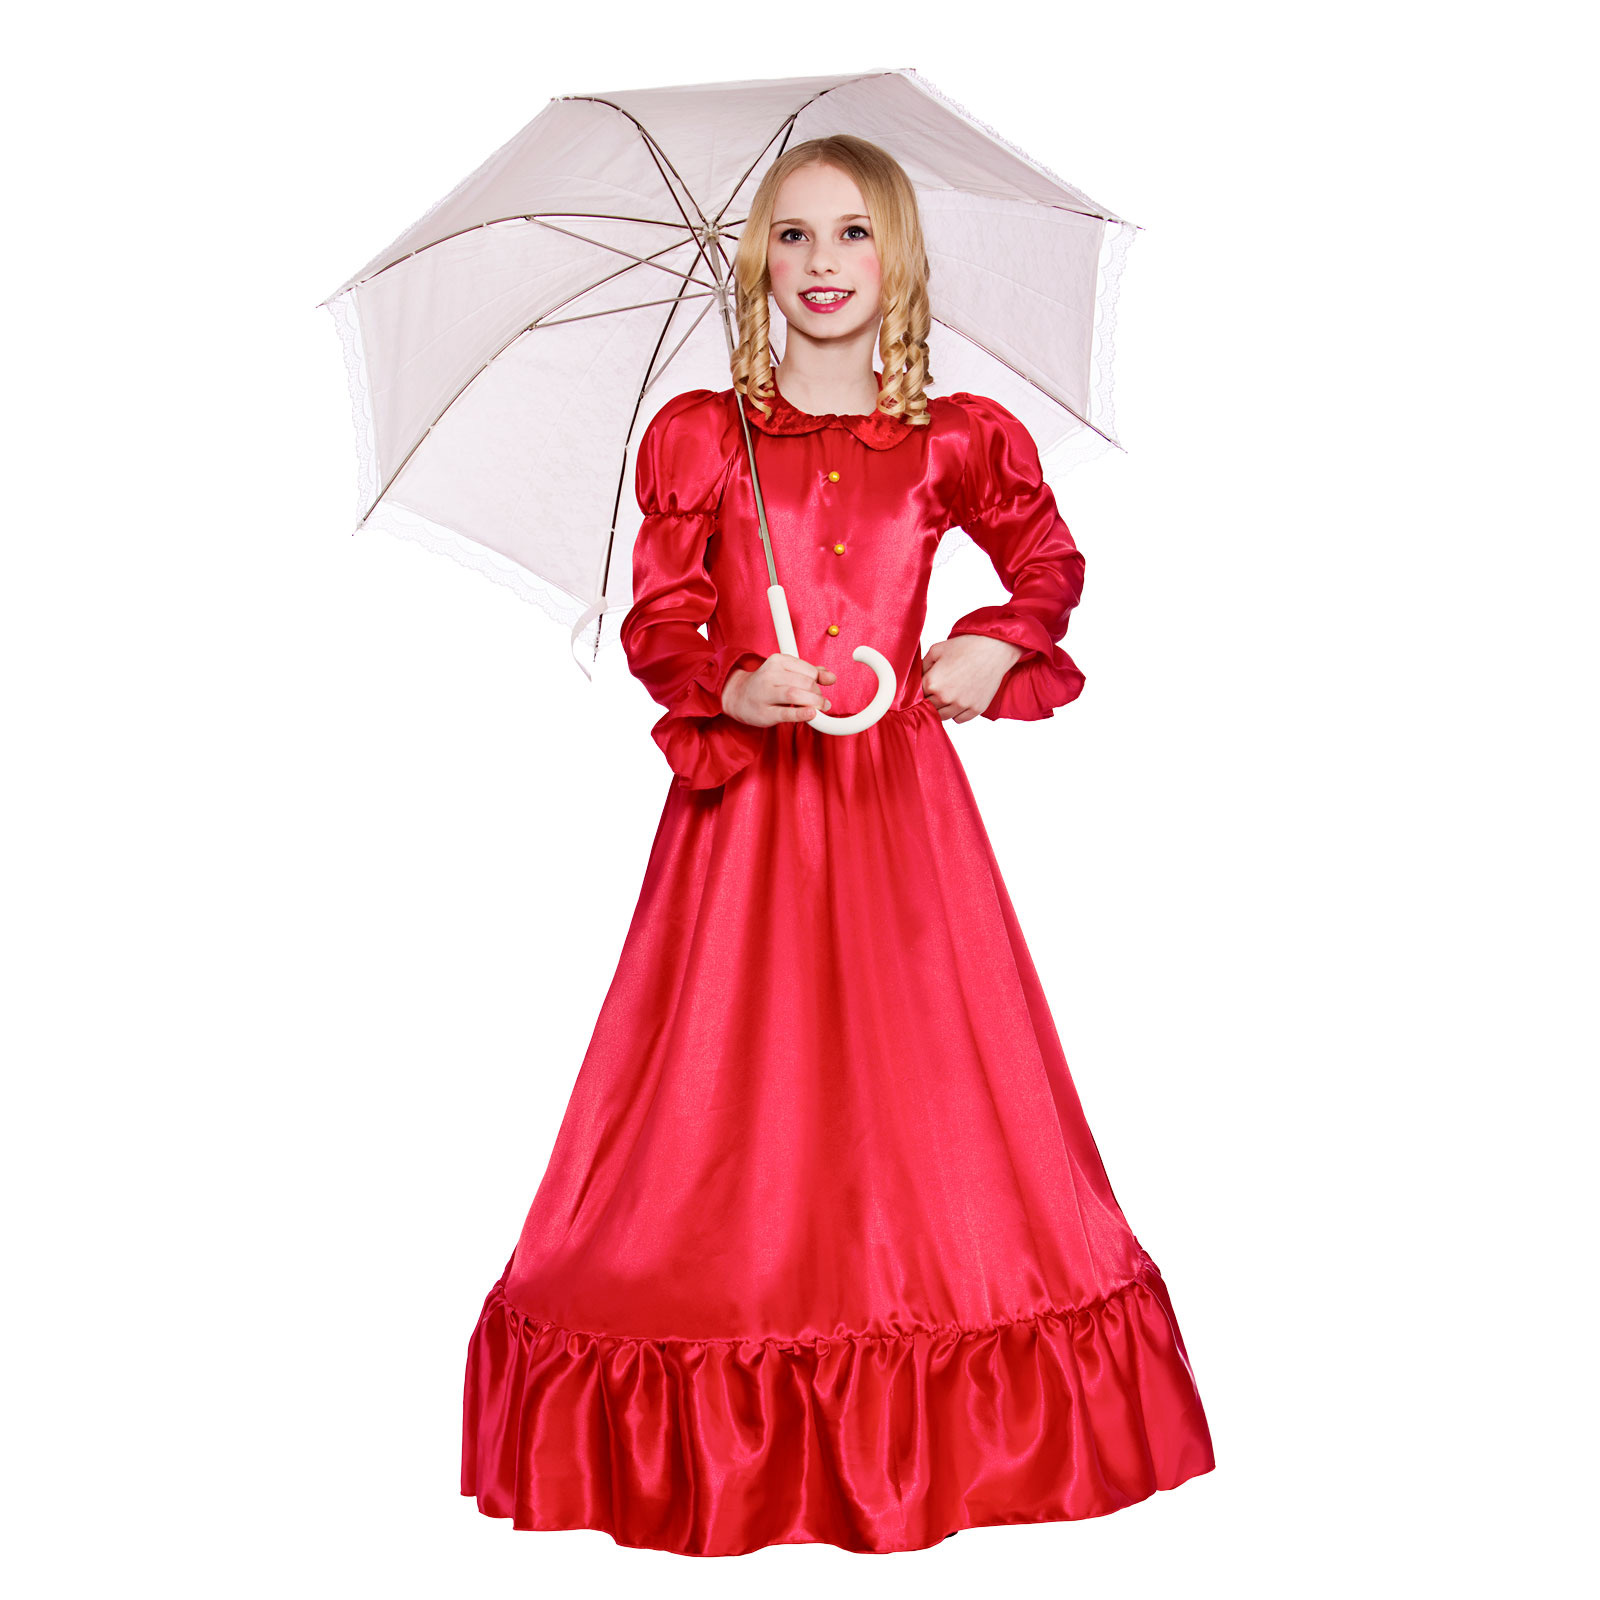 Victoria Costume: Girls Deluxe Victorian Lady Fancy Dress Up Party Costume